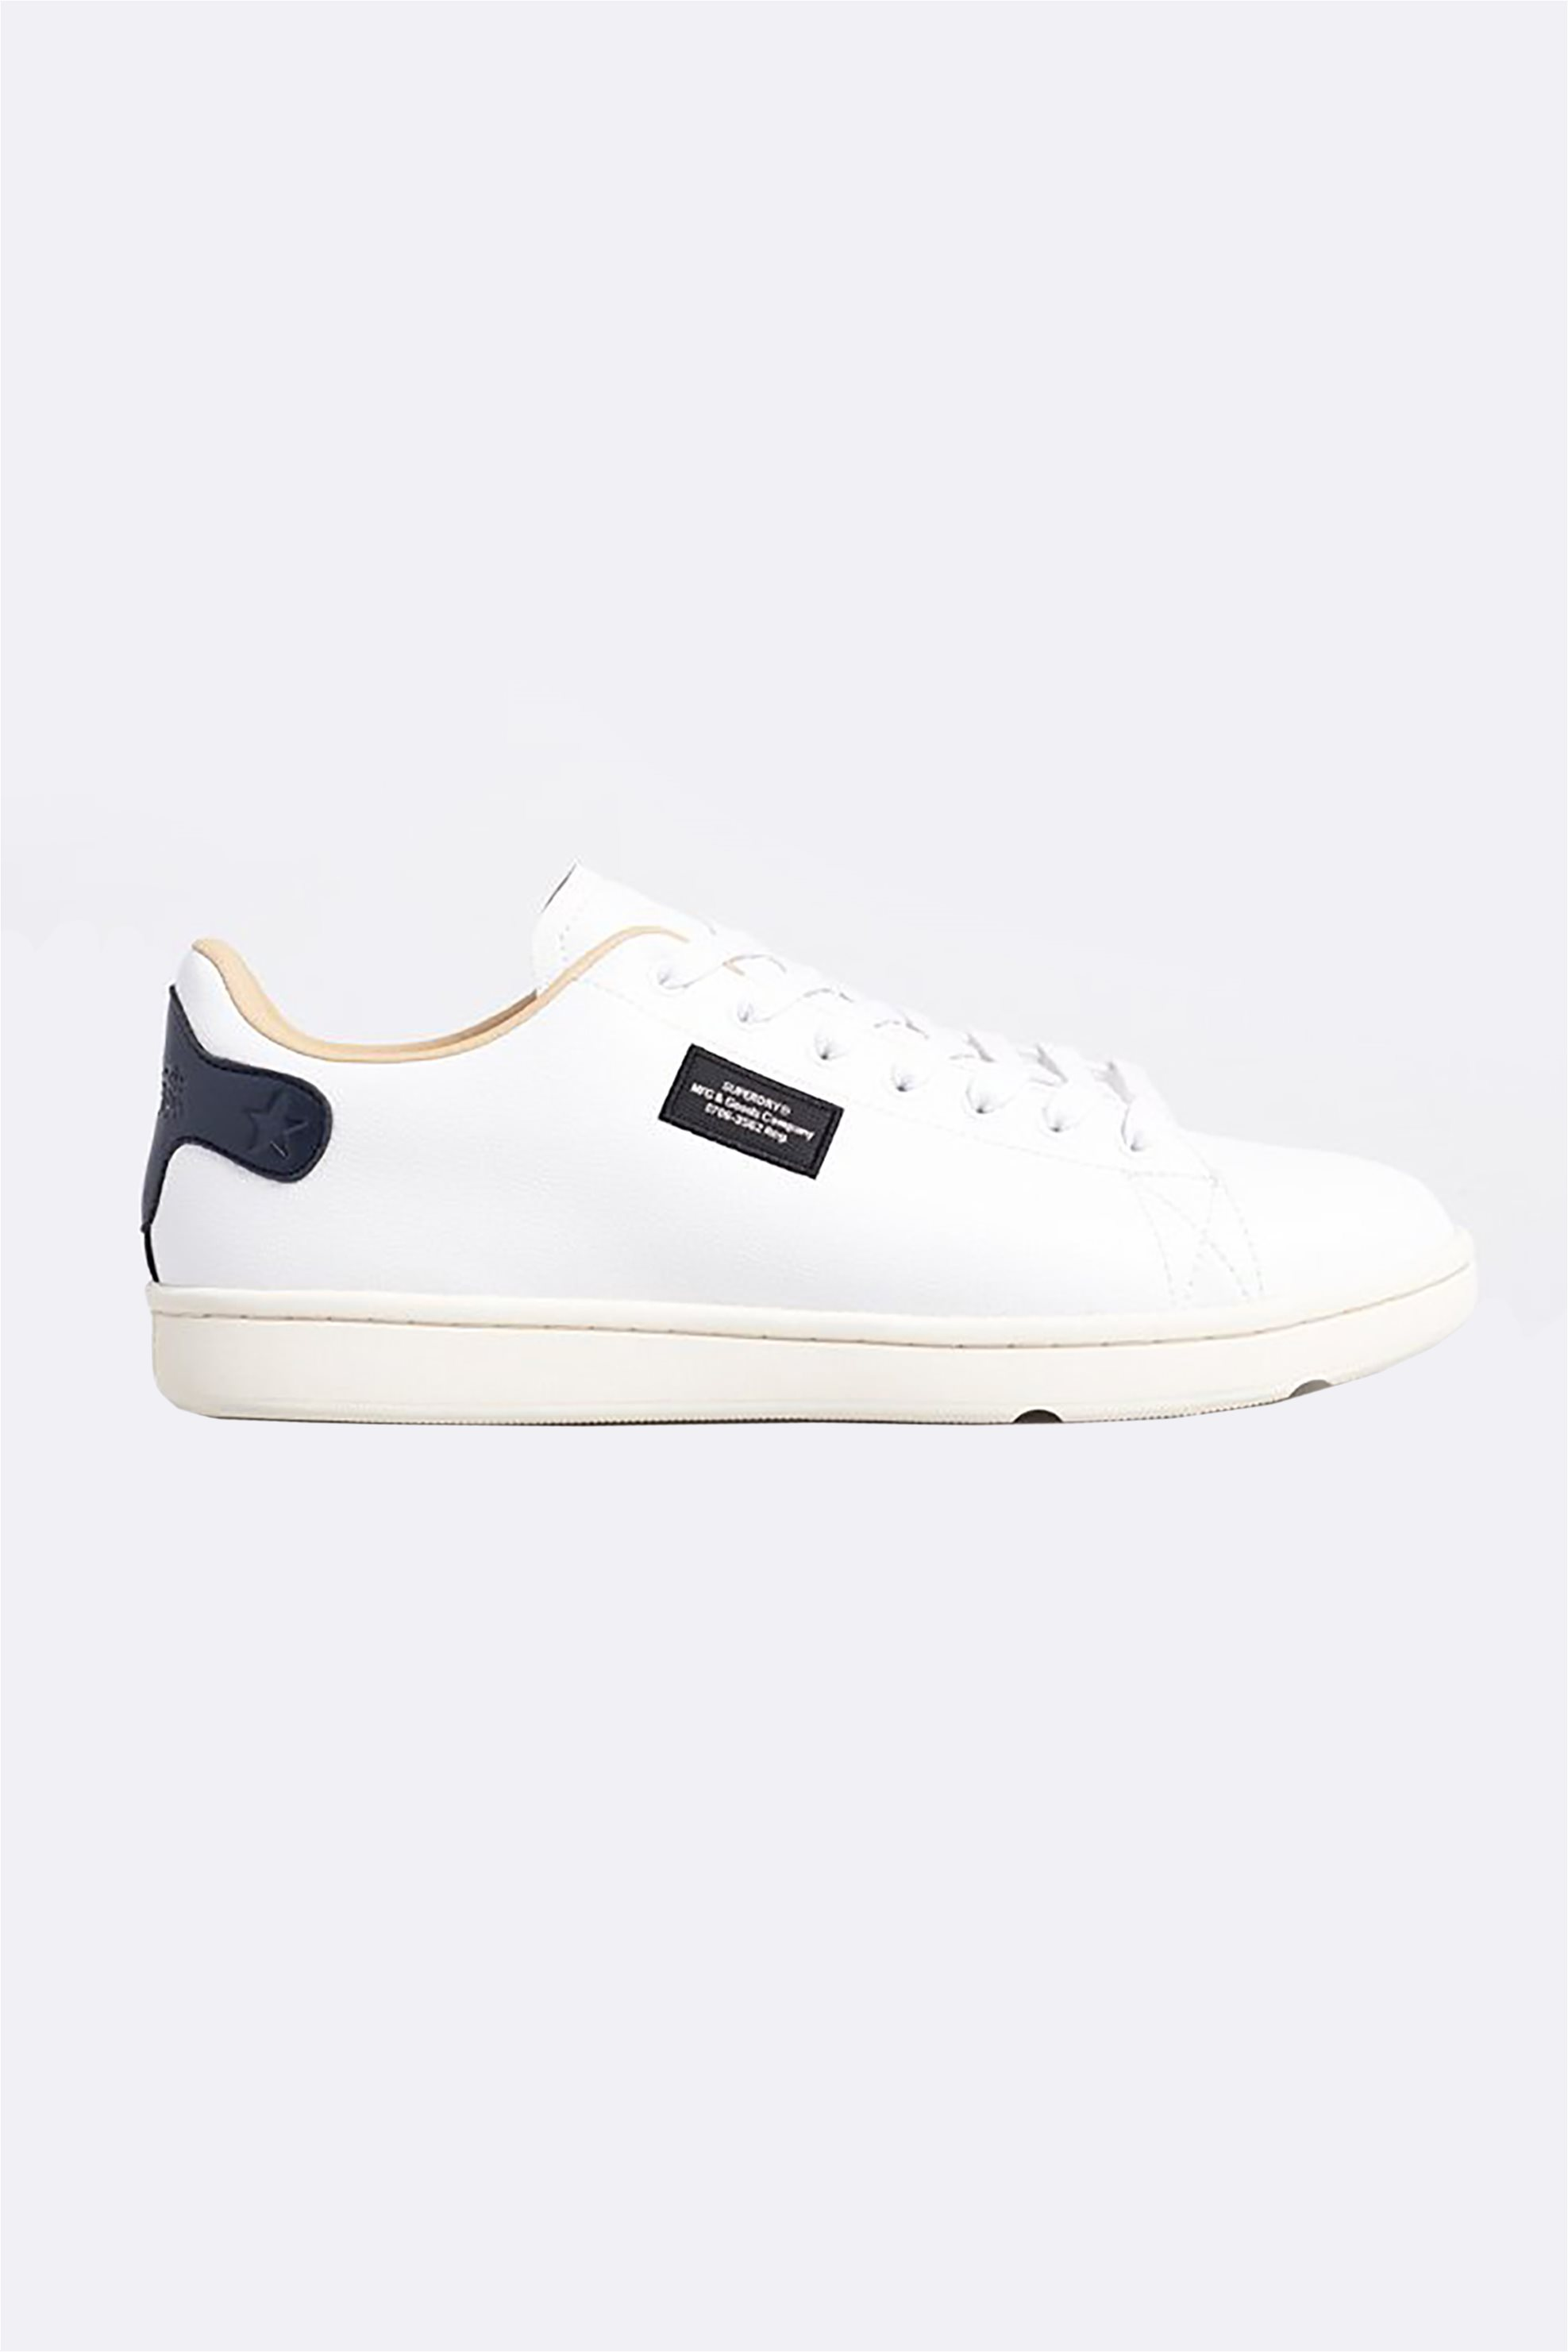 """Superdry ανδρικά sneakers """"Vintage Tennis Trainers"""" – MF110047A – Άσπρο"""